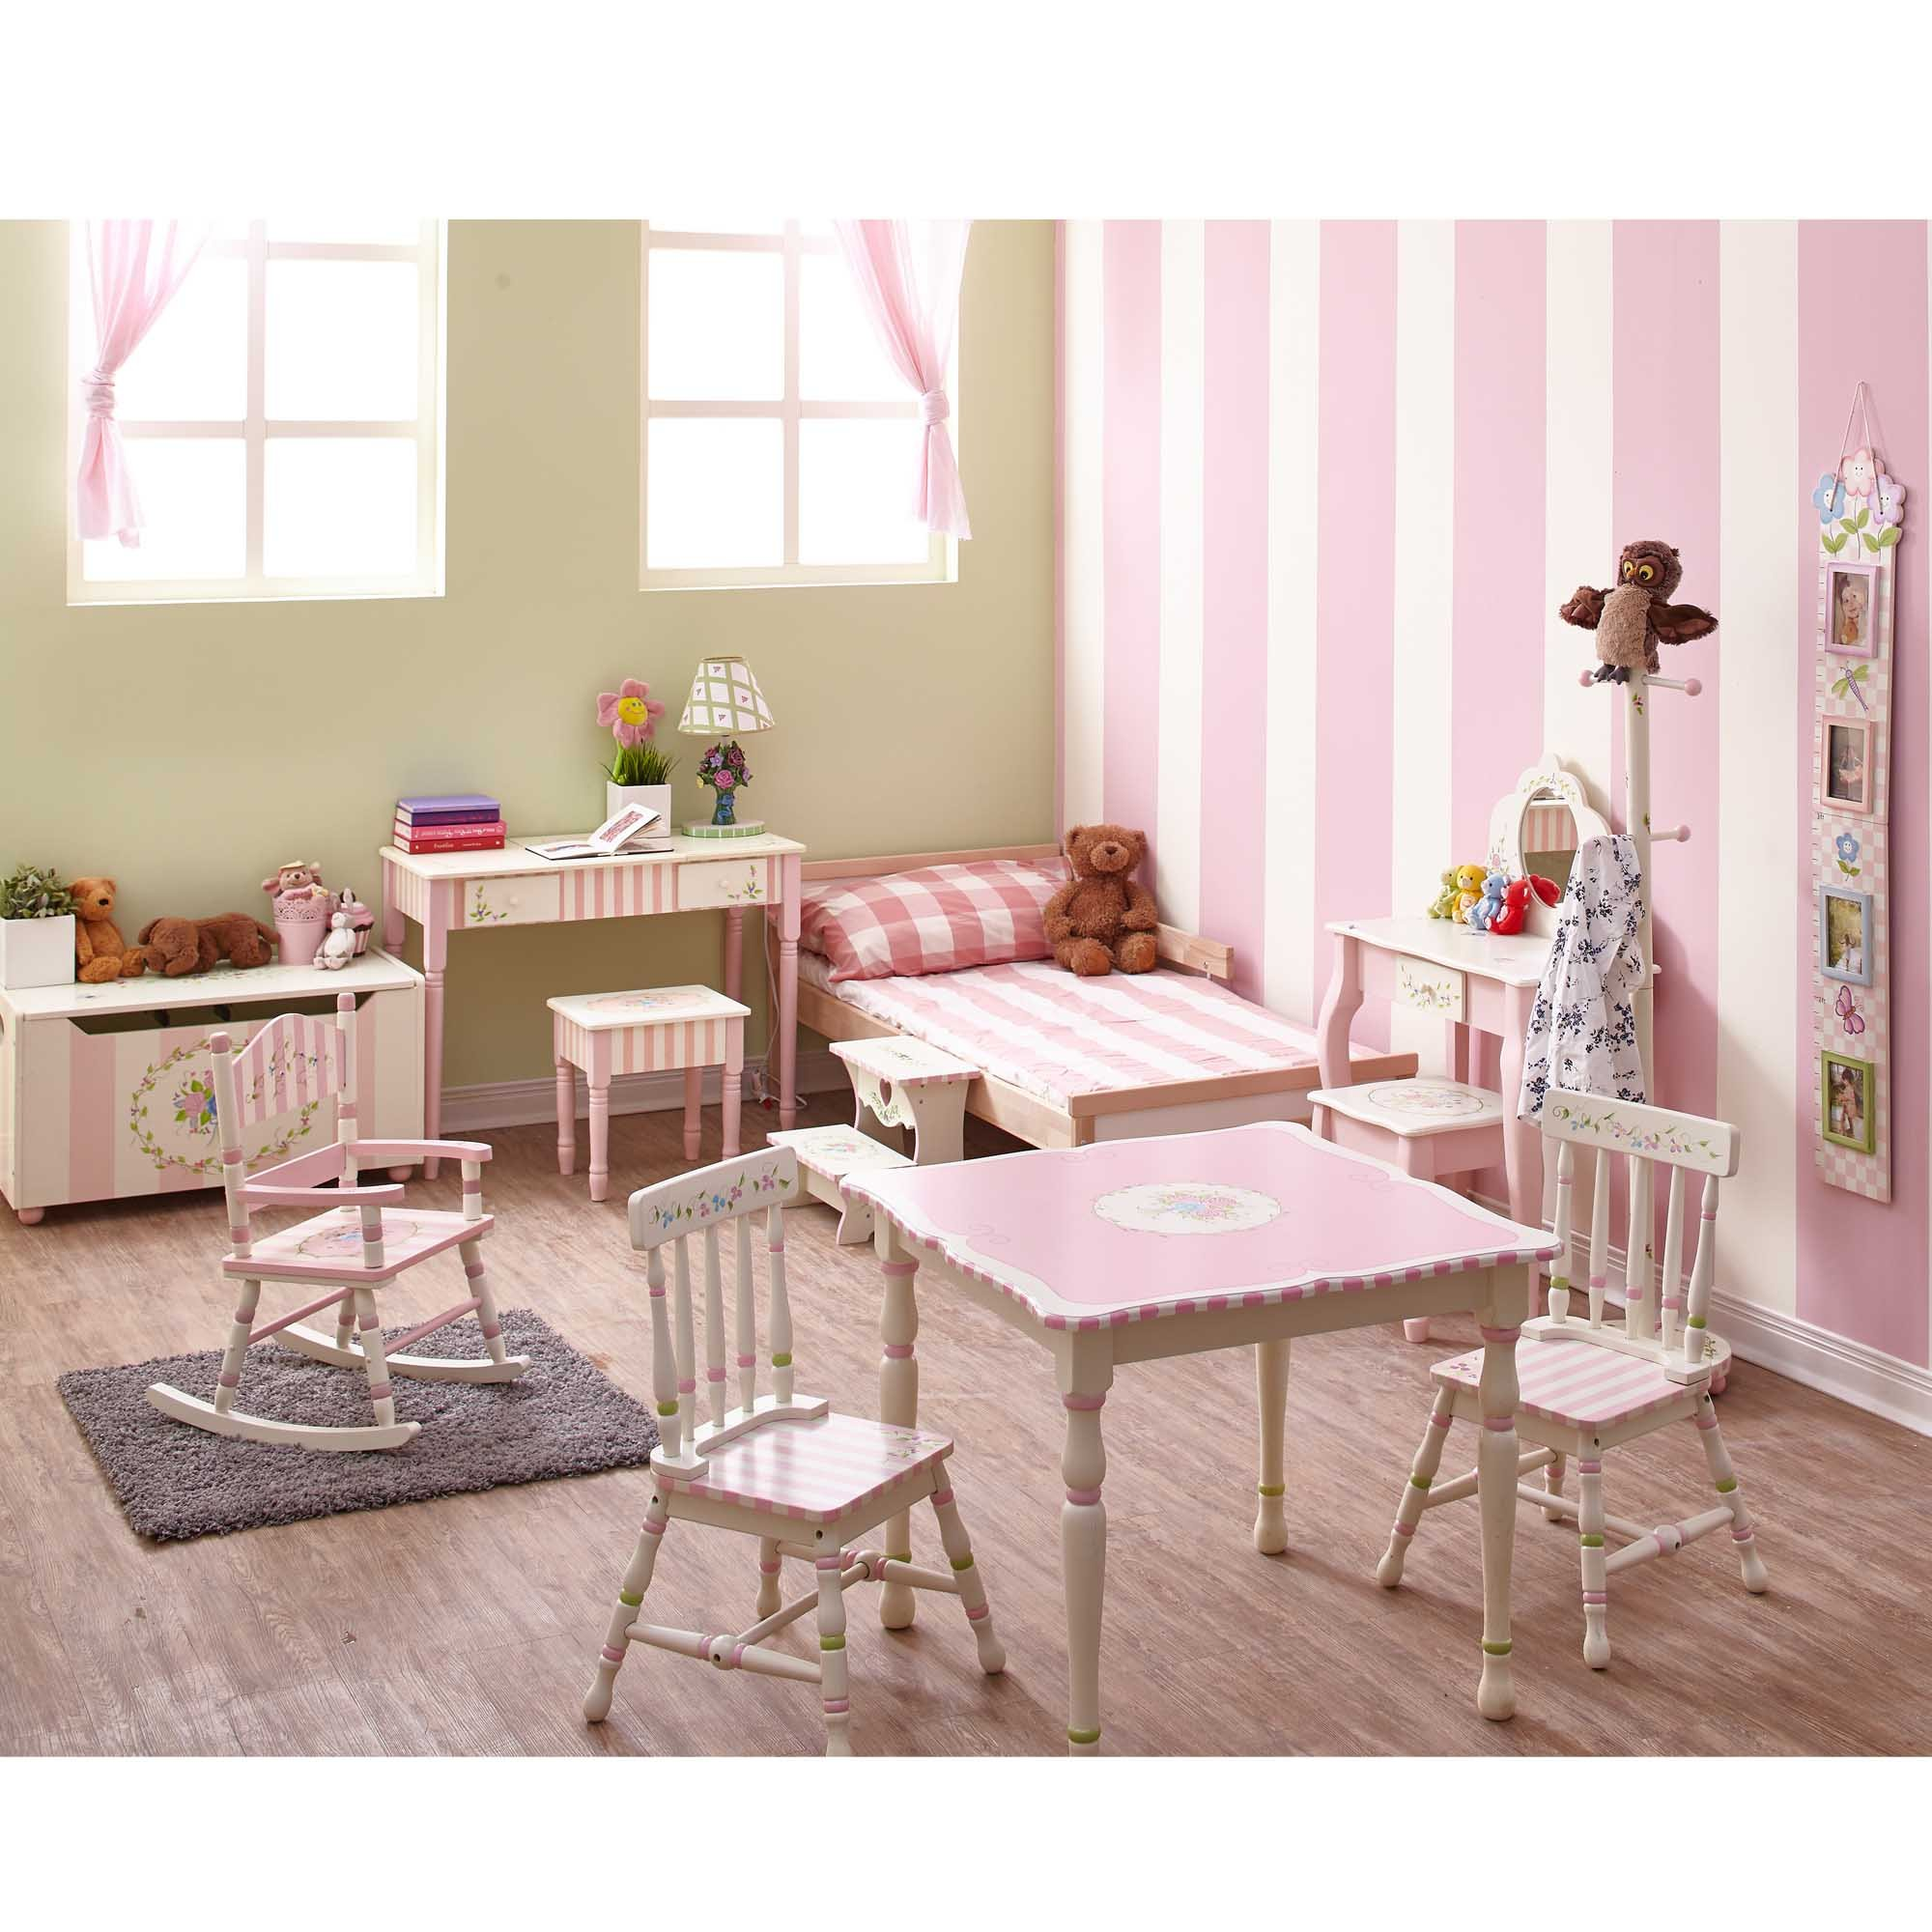 Fantasy Fields - Bouquet Thematic Kids Classic Vanity Table and Stool Set with Mirror   Imagination Inspiring Hand Crafted & Hand Painted Details   Non-Toxic, Lead Free Water-based Paint by Teamson Design Corp (Image #5)